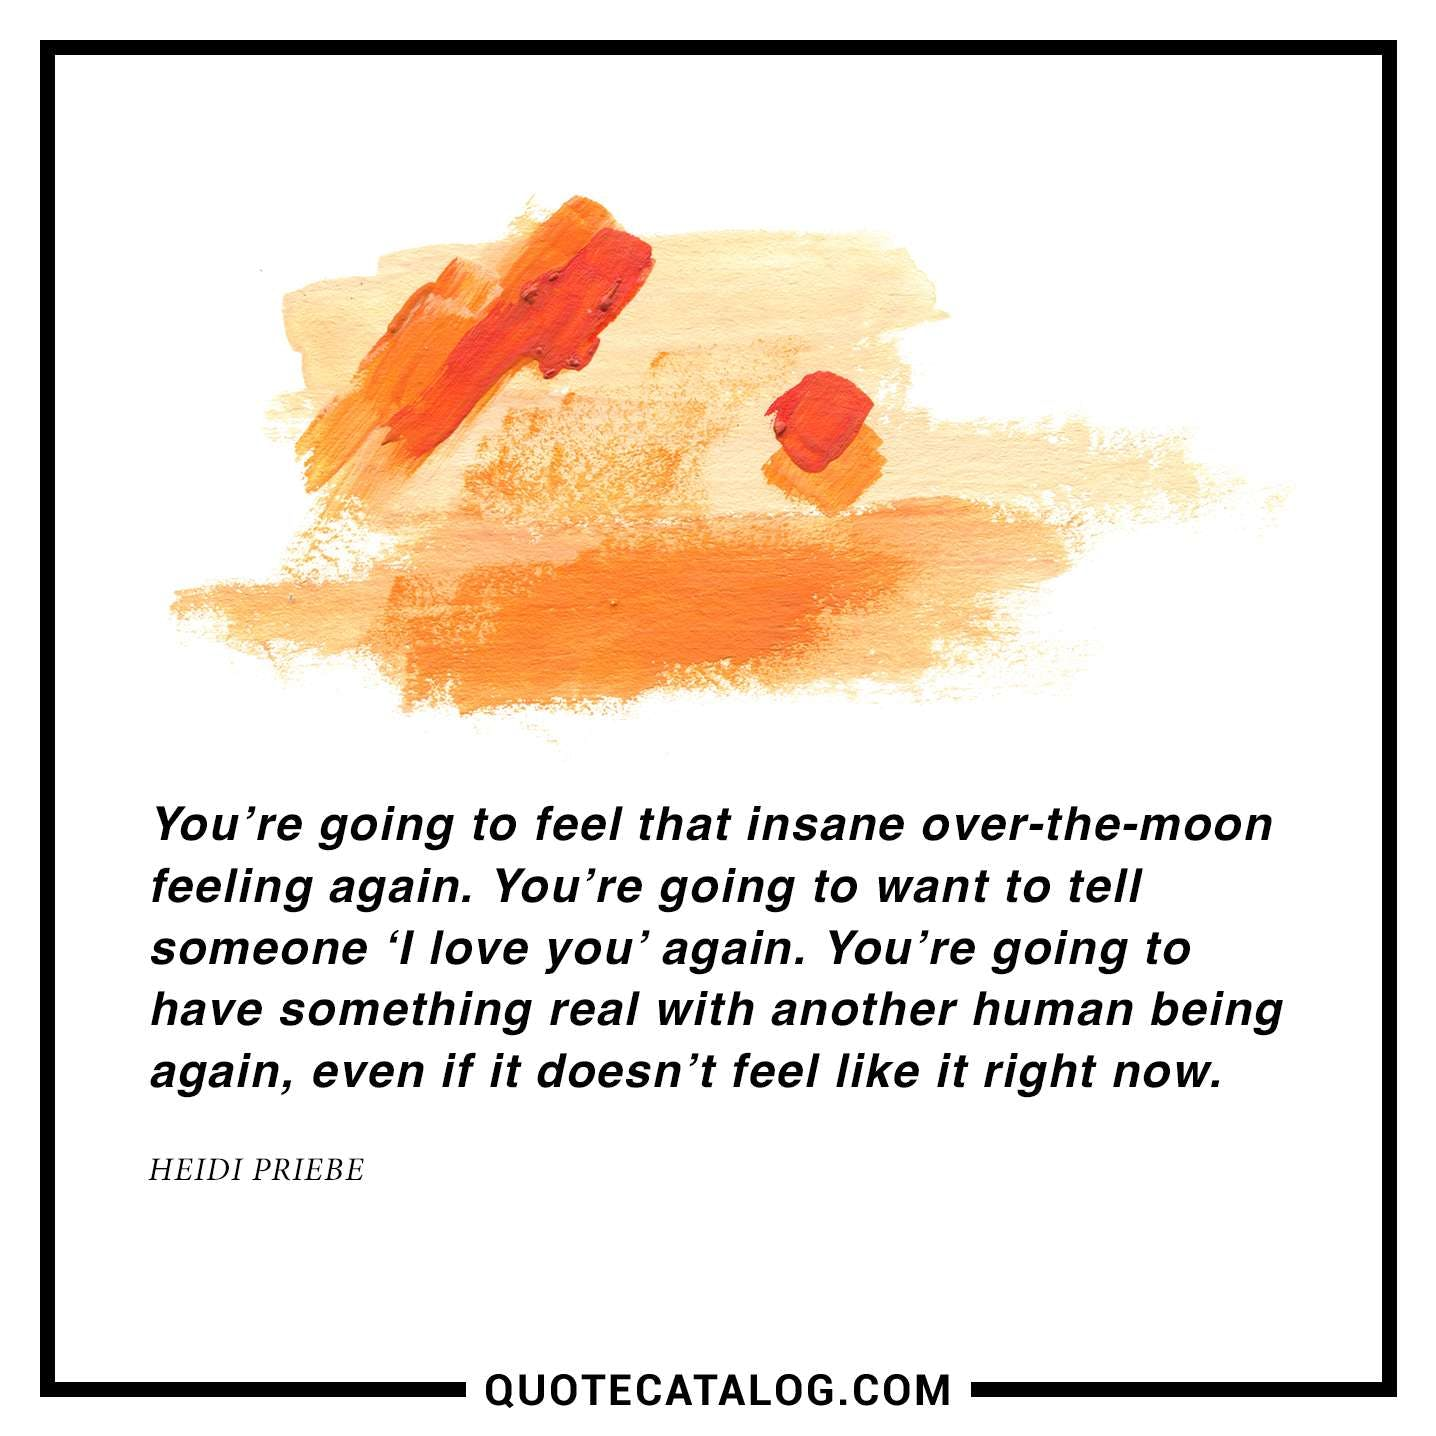 You're going to feel that insane over-the-moon feeling again. You're going to want to tell someone 'I love you' again. You're going to have something real with another human being again, even if it doesn't feel like it right now.